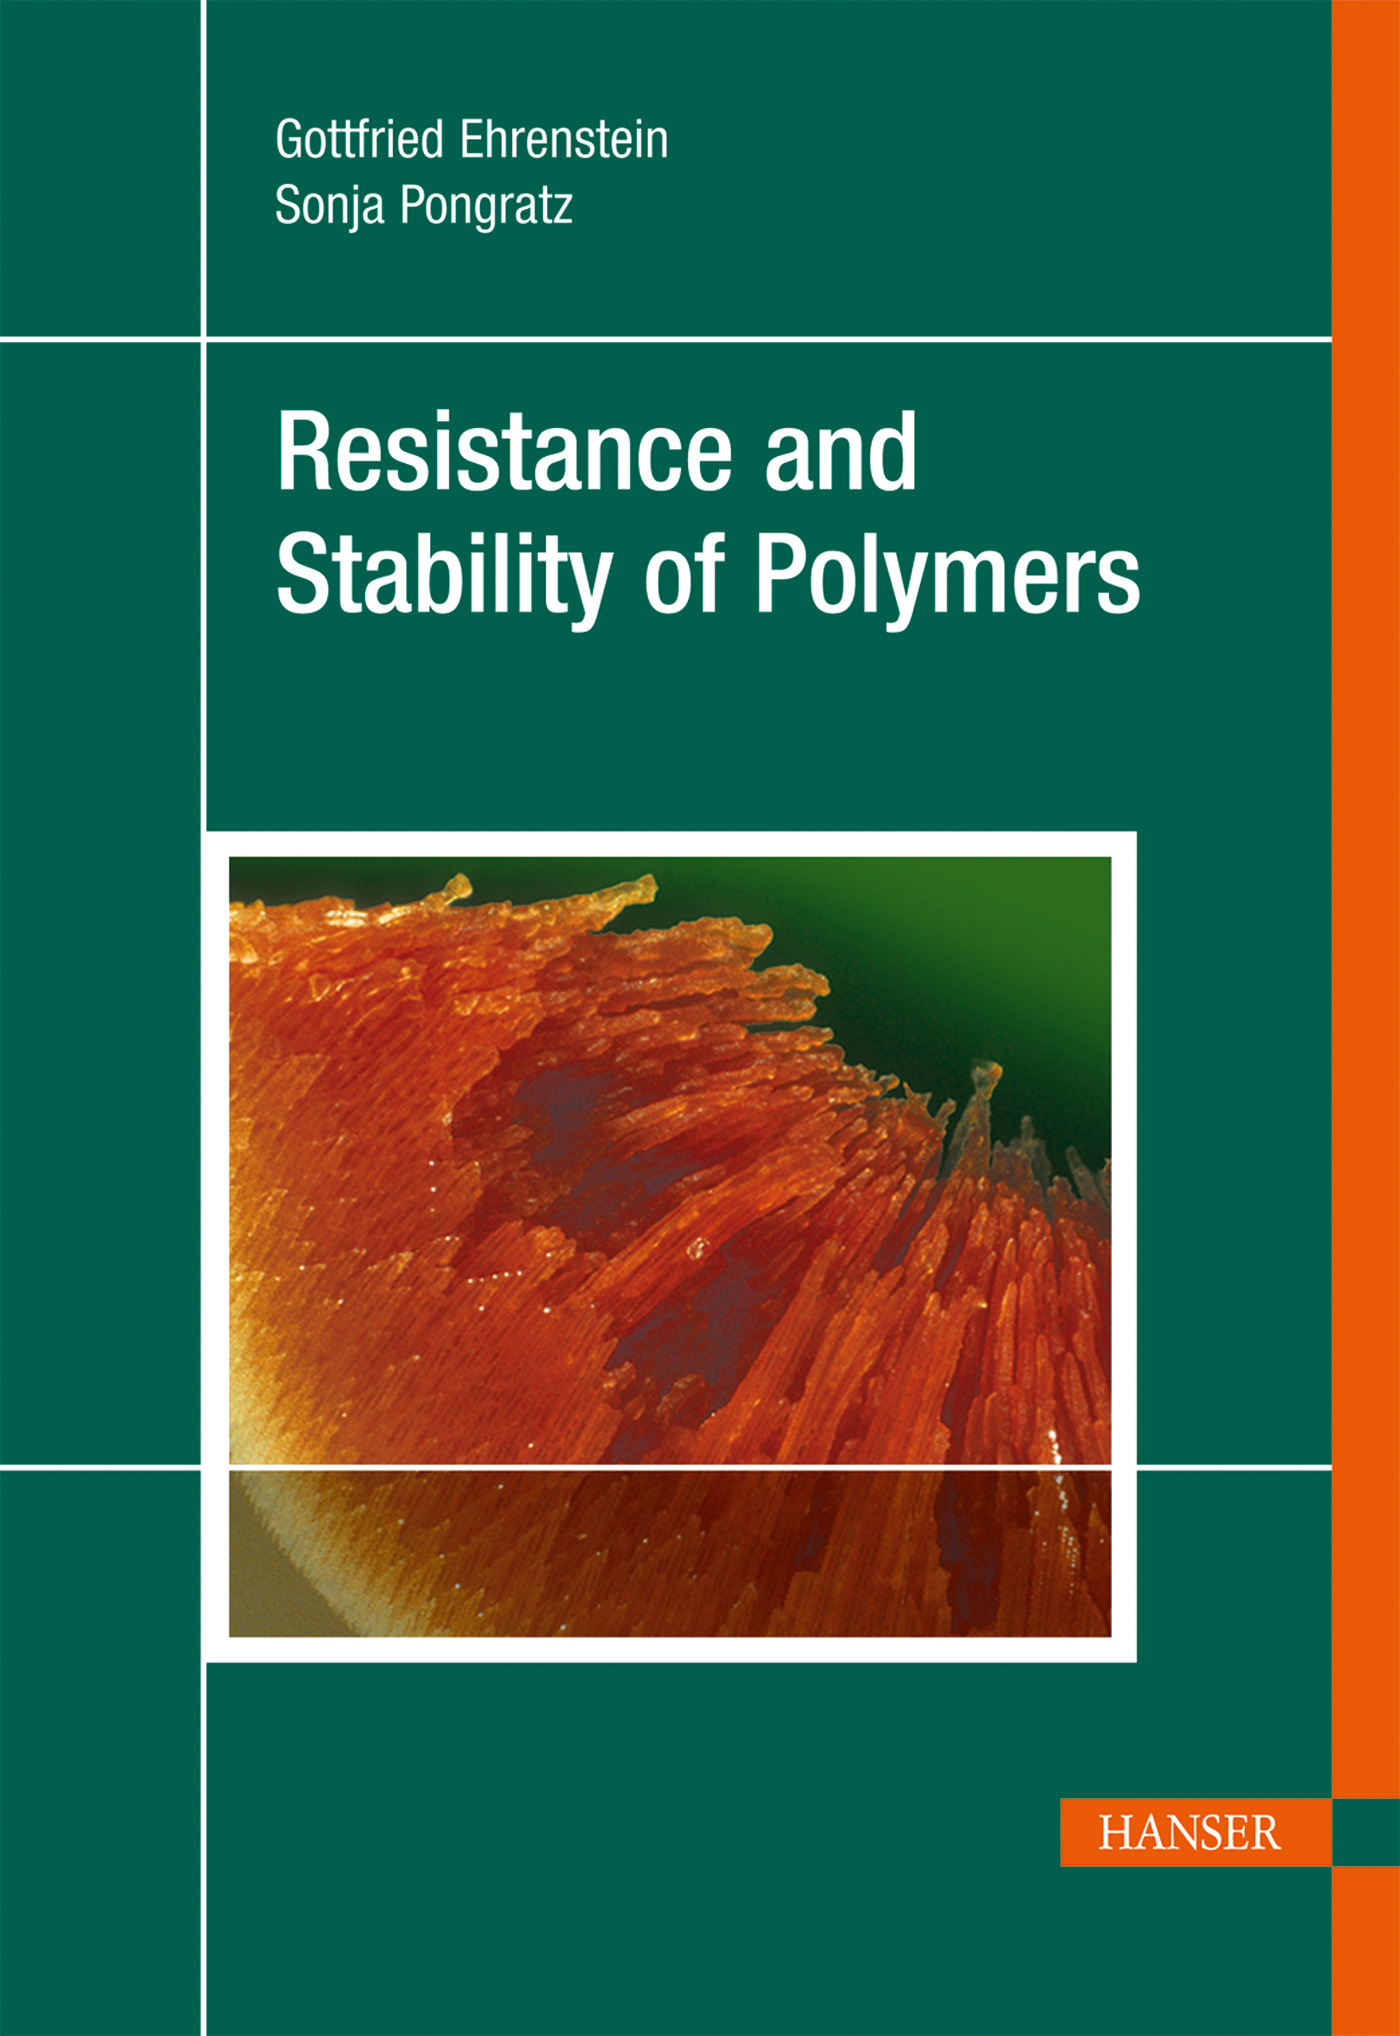 Ehrenstein, Pongratz, Resistance and Stability of Polymers, 978-3-446-41645-1